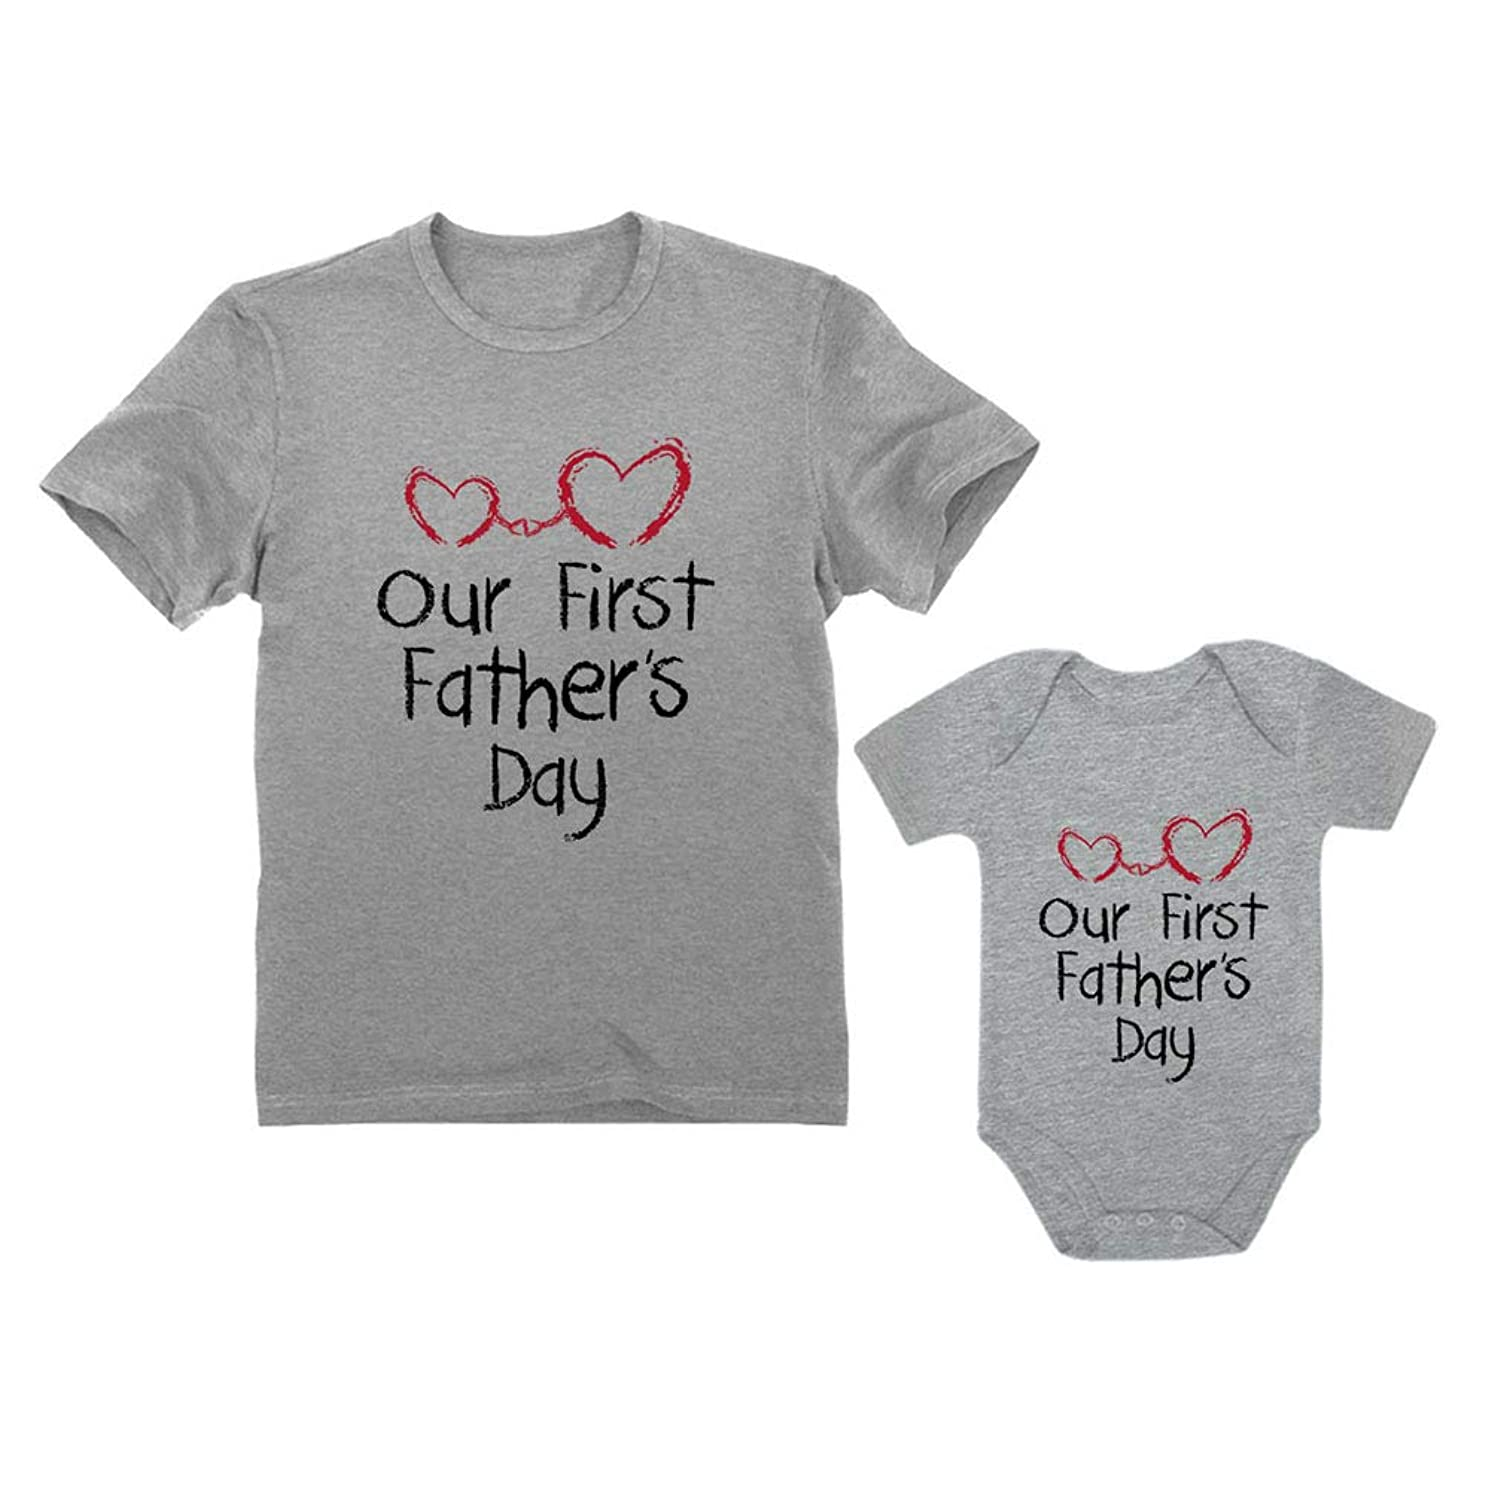 Our First Father's Day Dad & Baby Matching Set Infant Bodysuit & Men's T-Shirt